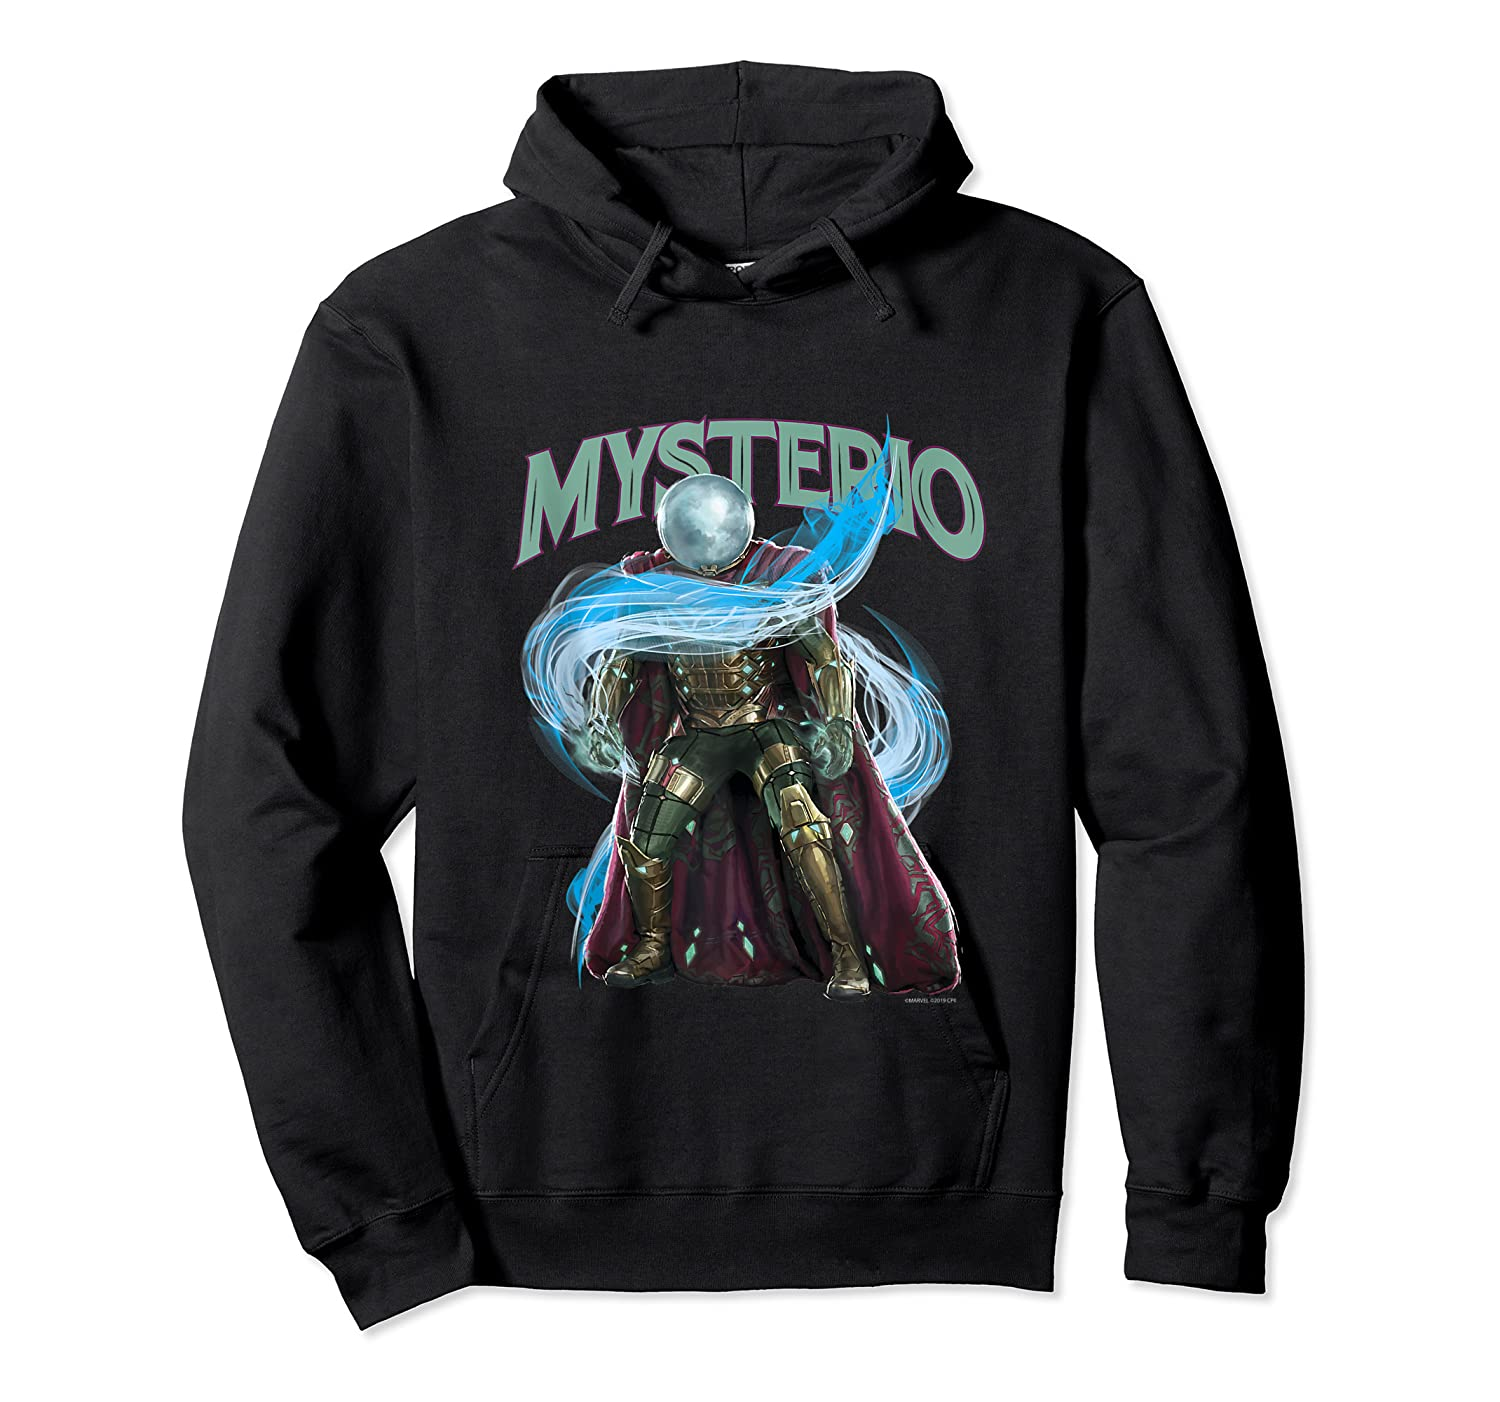 Spider Man Far From Home Mysterio Stance Shirts Unisex Pullover Hoodie